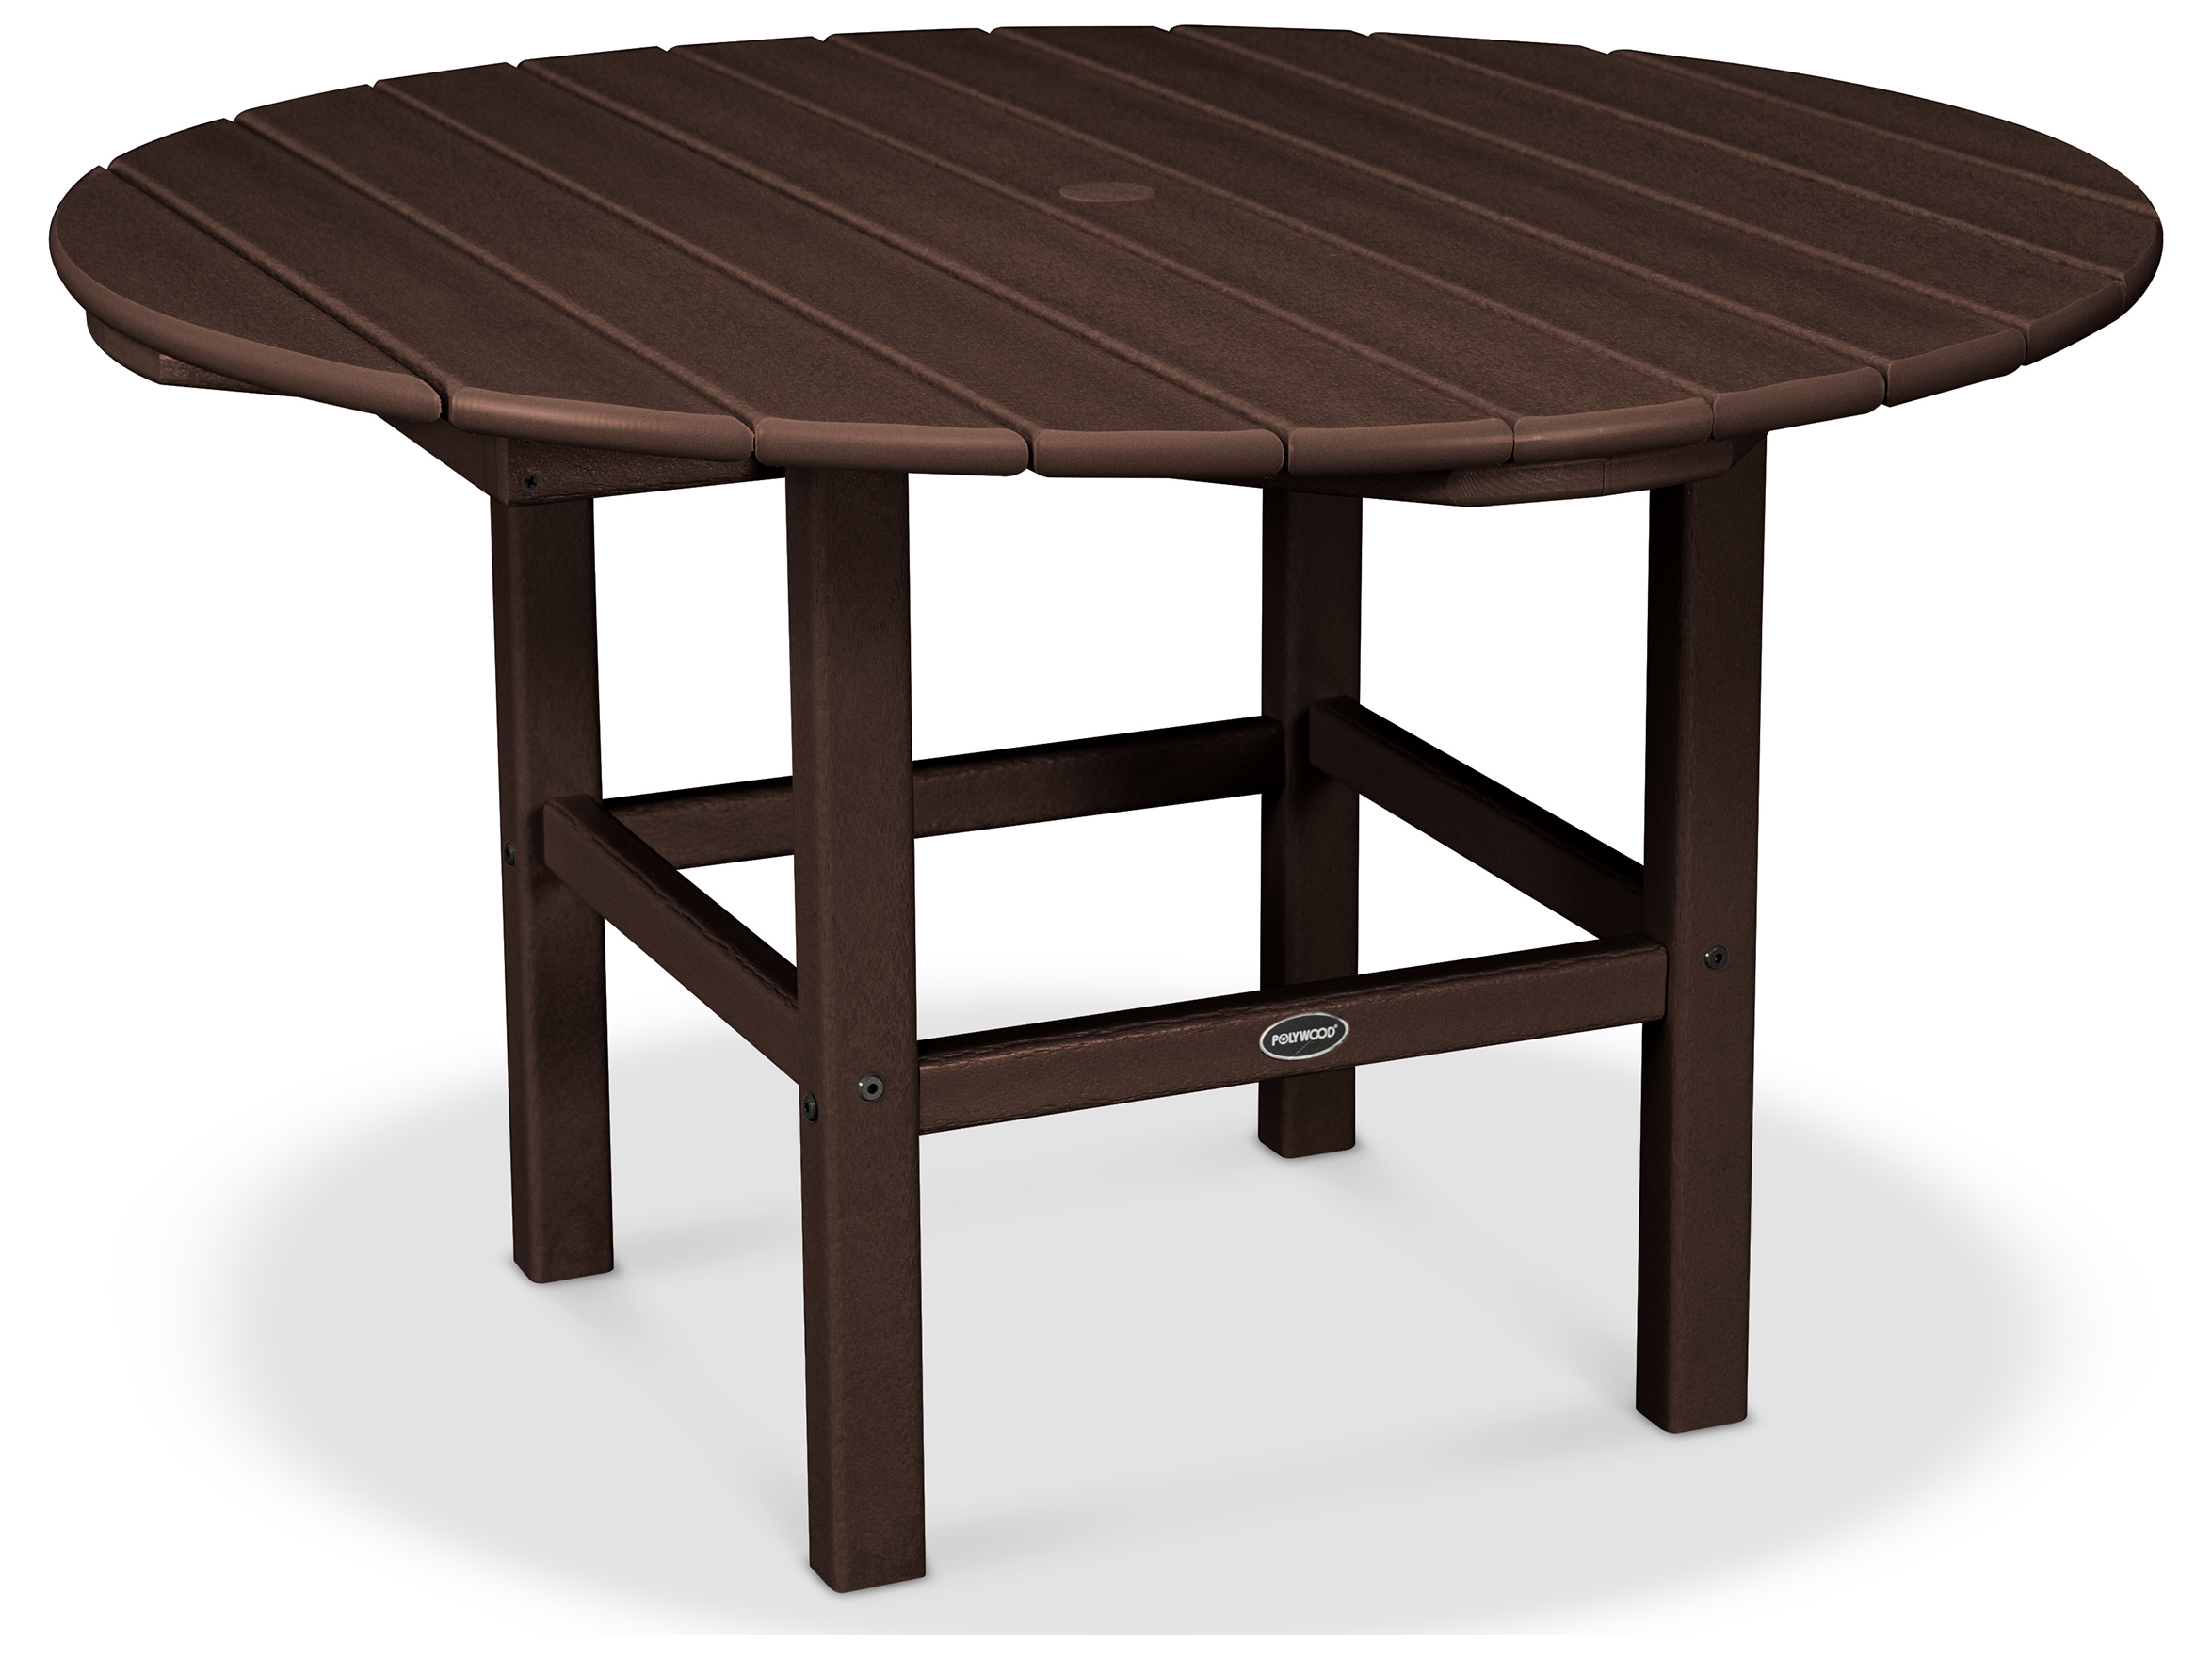 Polywood 174 Kids Recycled Plastic 38 Wide Round Dining